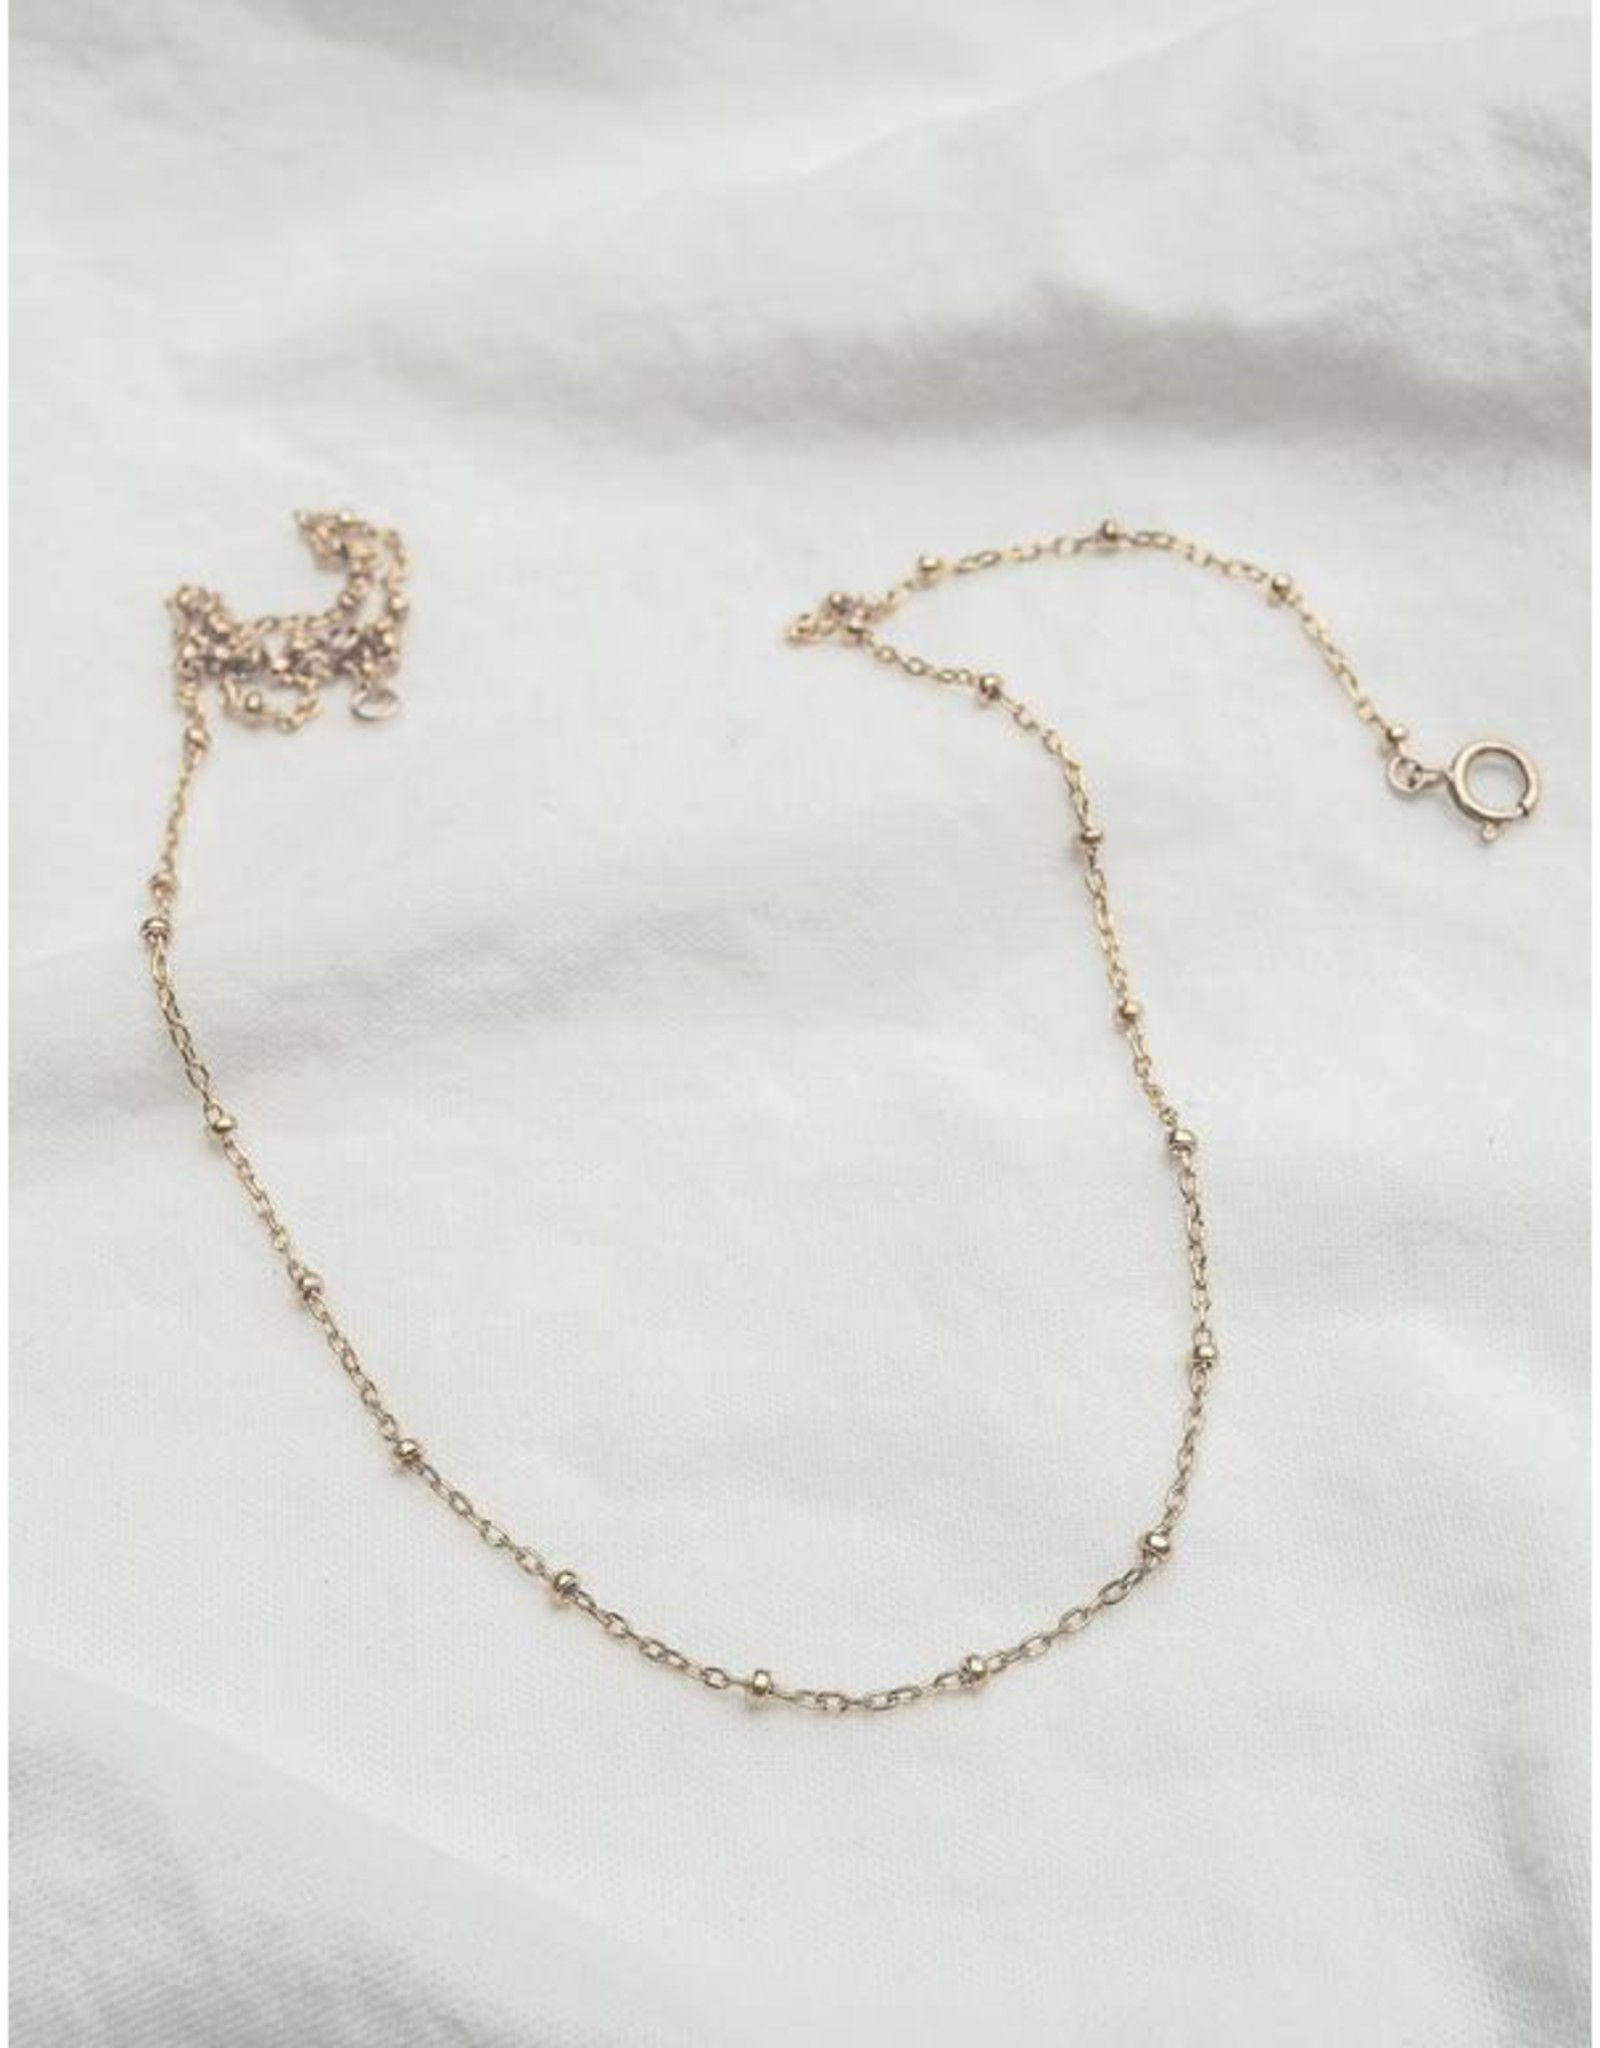 Hart + Stone Dotted Necklace - Gold Filled